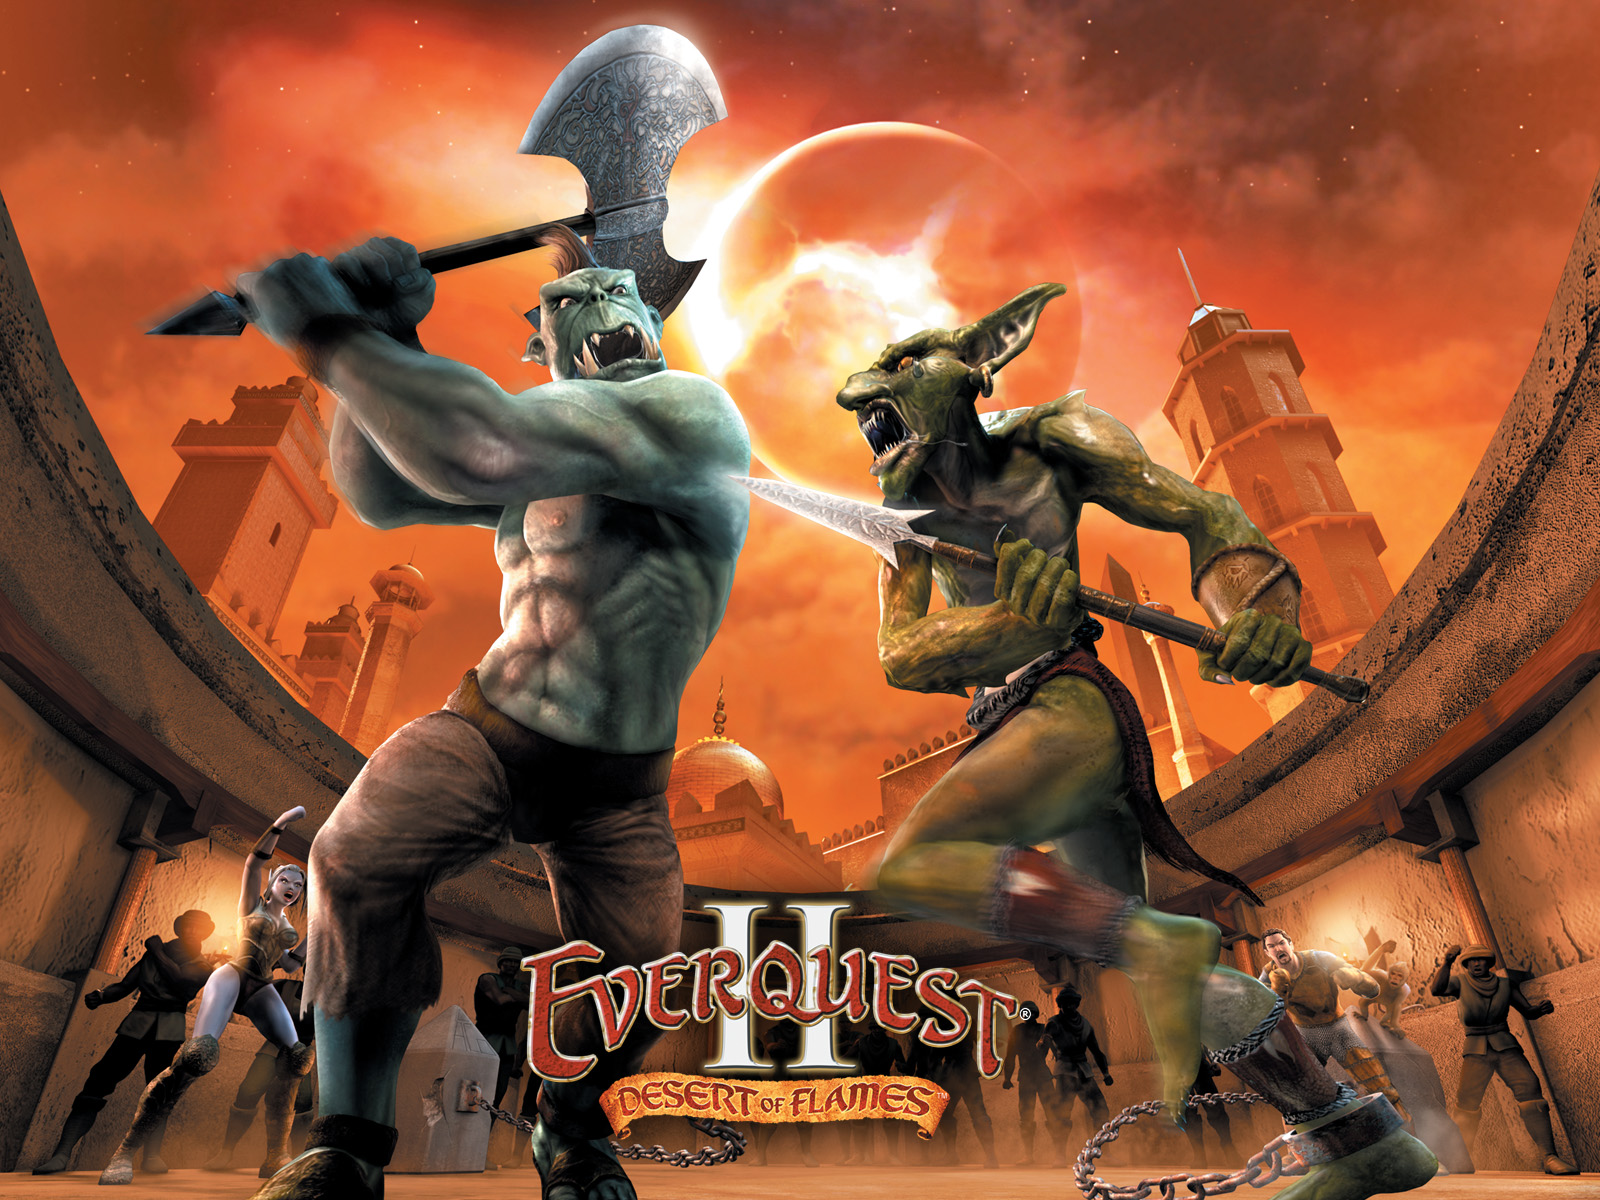 EverQuest Wallpaper and Background Image 1600x1200 ID240818 1600x1200